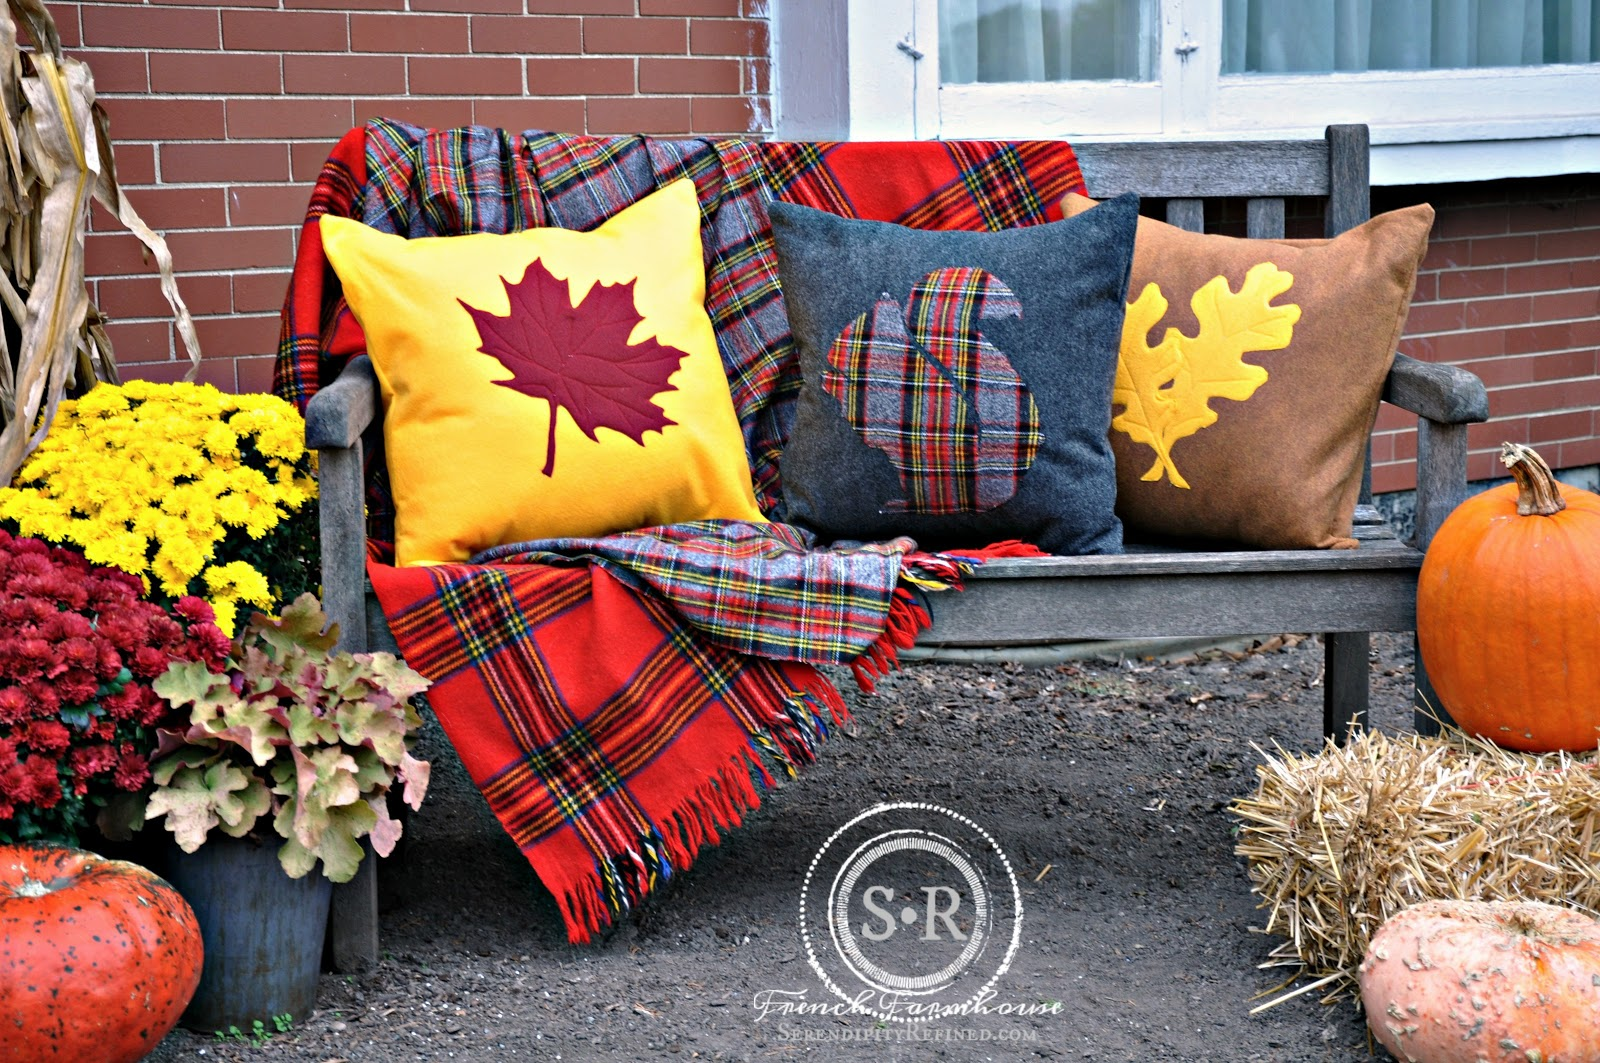 Serendipity Refined Blog: Red Yellow and Gray Fall Porch Decor